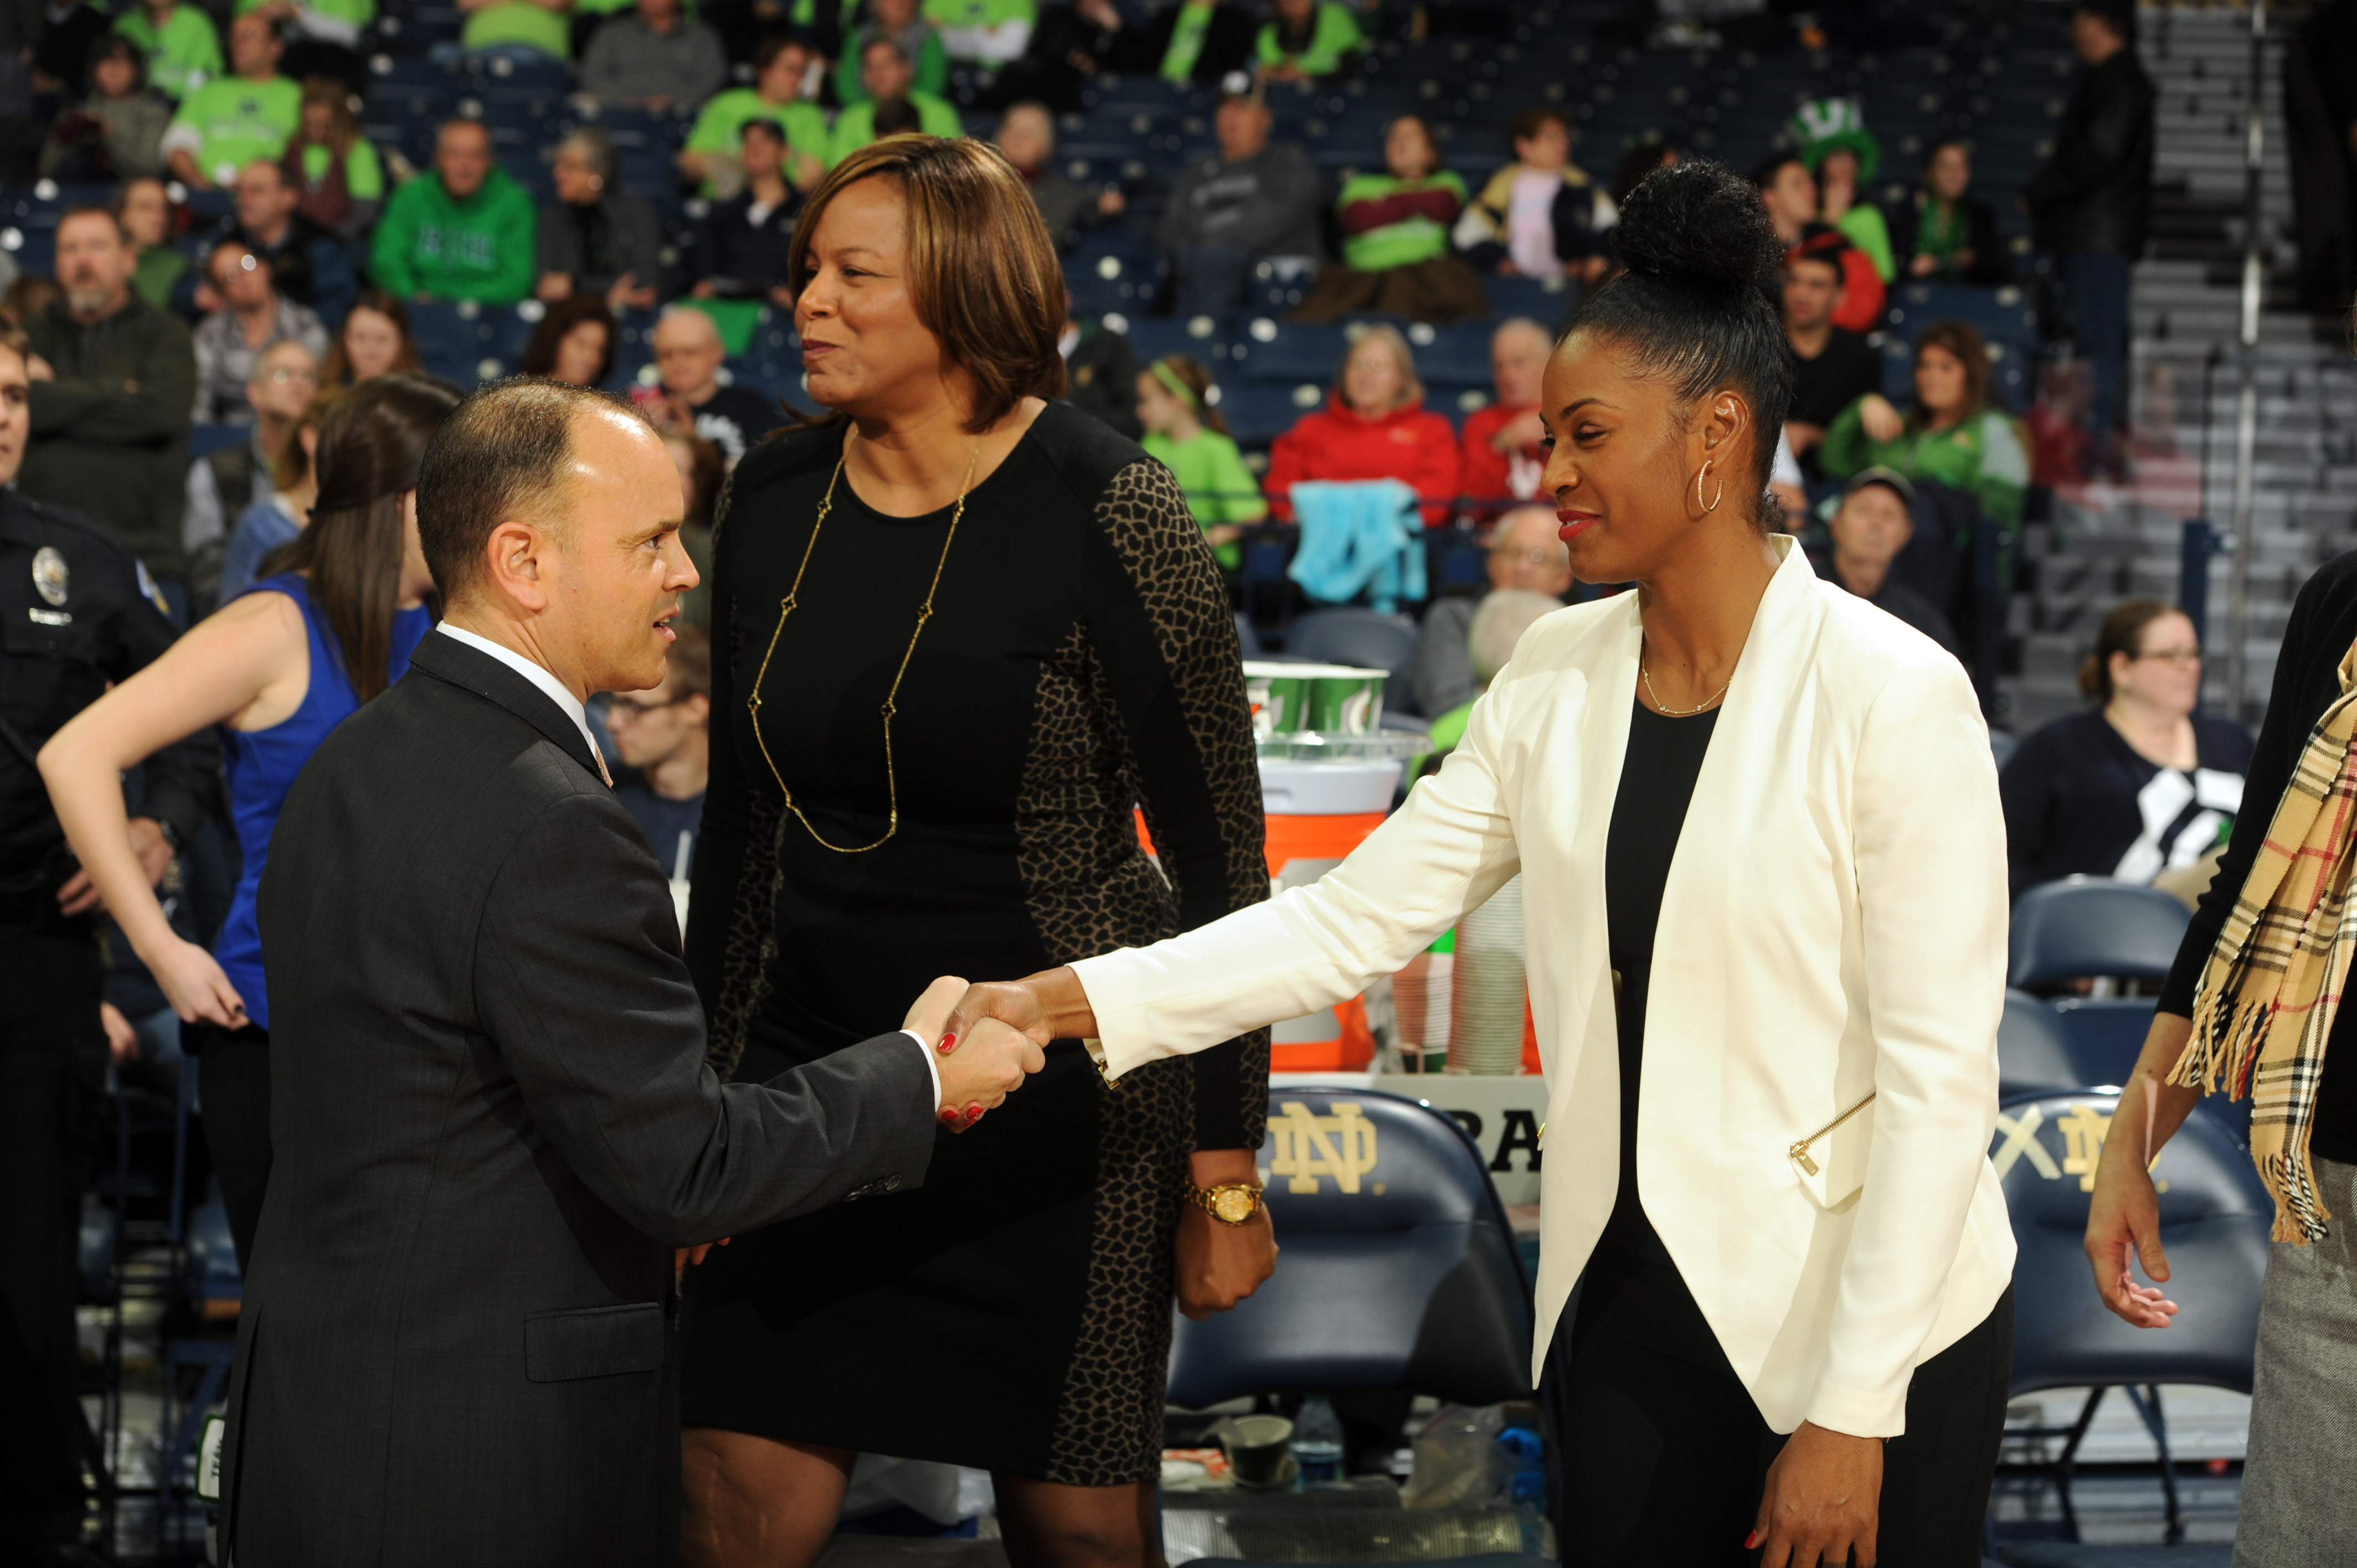 Oregon State coach Scott Rueck shakes hands with Notre Dame assistant Niele Ivey prior to a NCAA college basketball game between Notre Dame and Oregon State, Monday Dec. 28, 2015 in South Bend, Ind. (AP Photo/Joe Raymond)